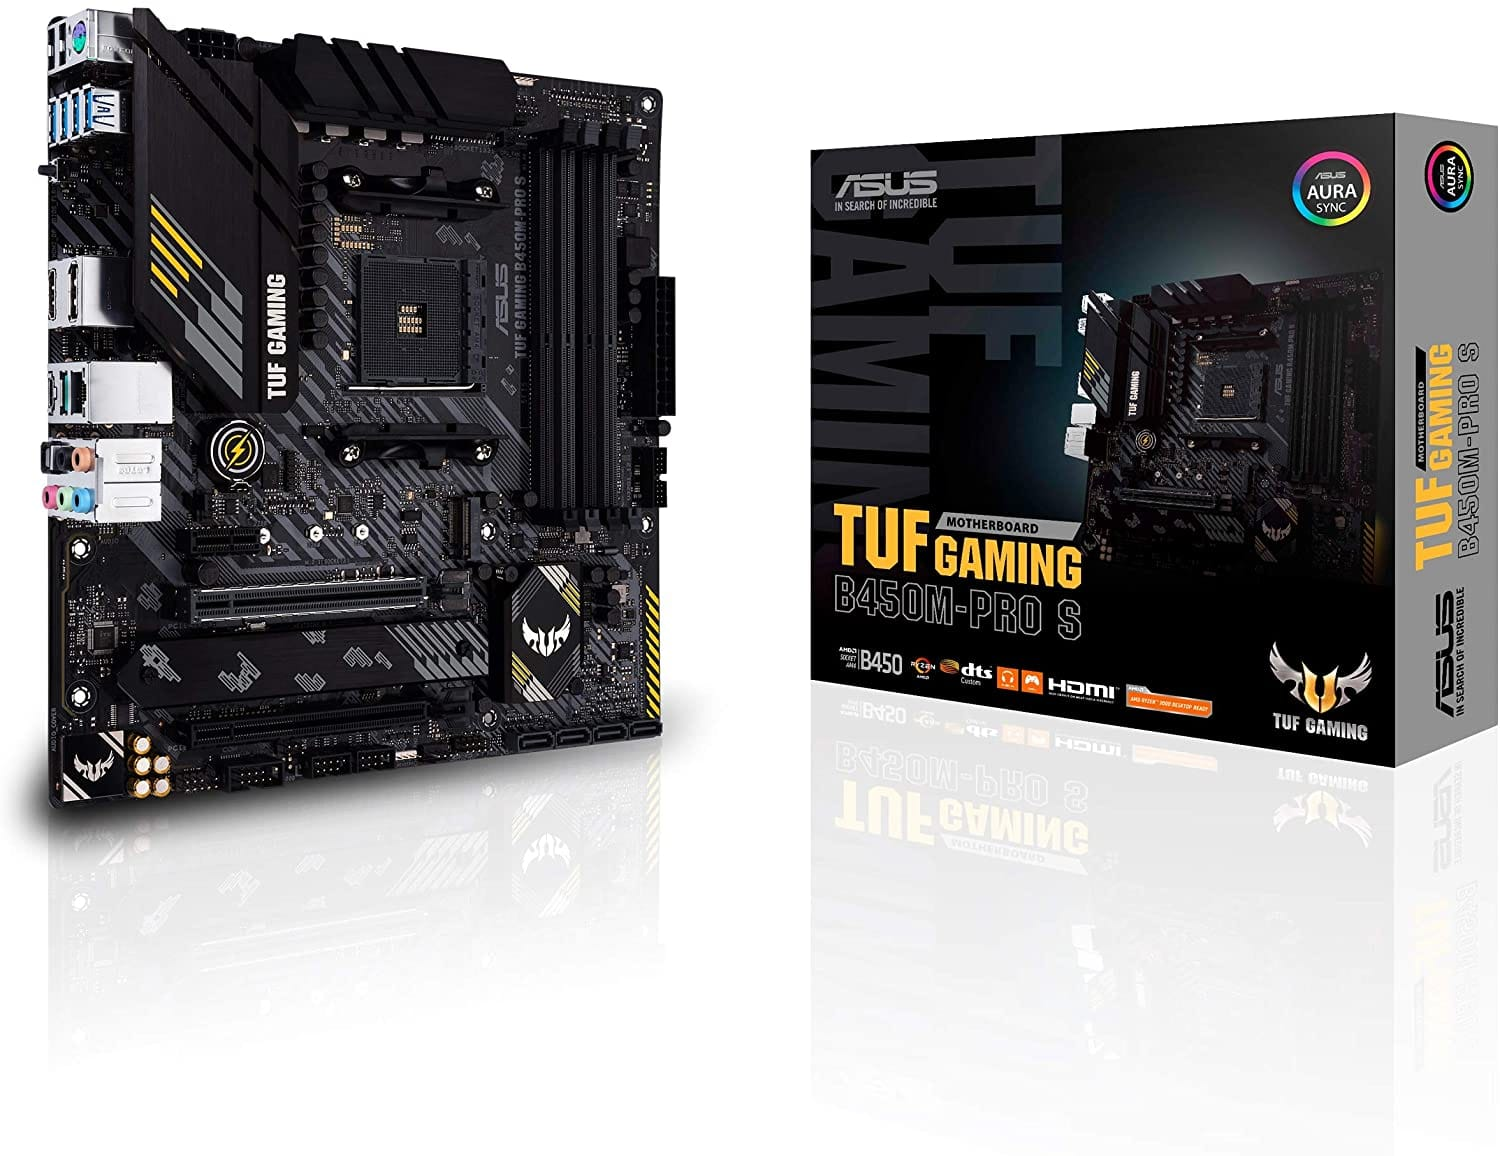 ASUS TUF Gaming B450M-PRO S AMD AM4 (3rd Gen Ryzen Micro ATX Gaming Motherboard (8+2 Power Stages, $77.99